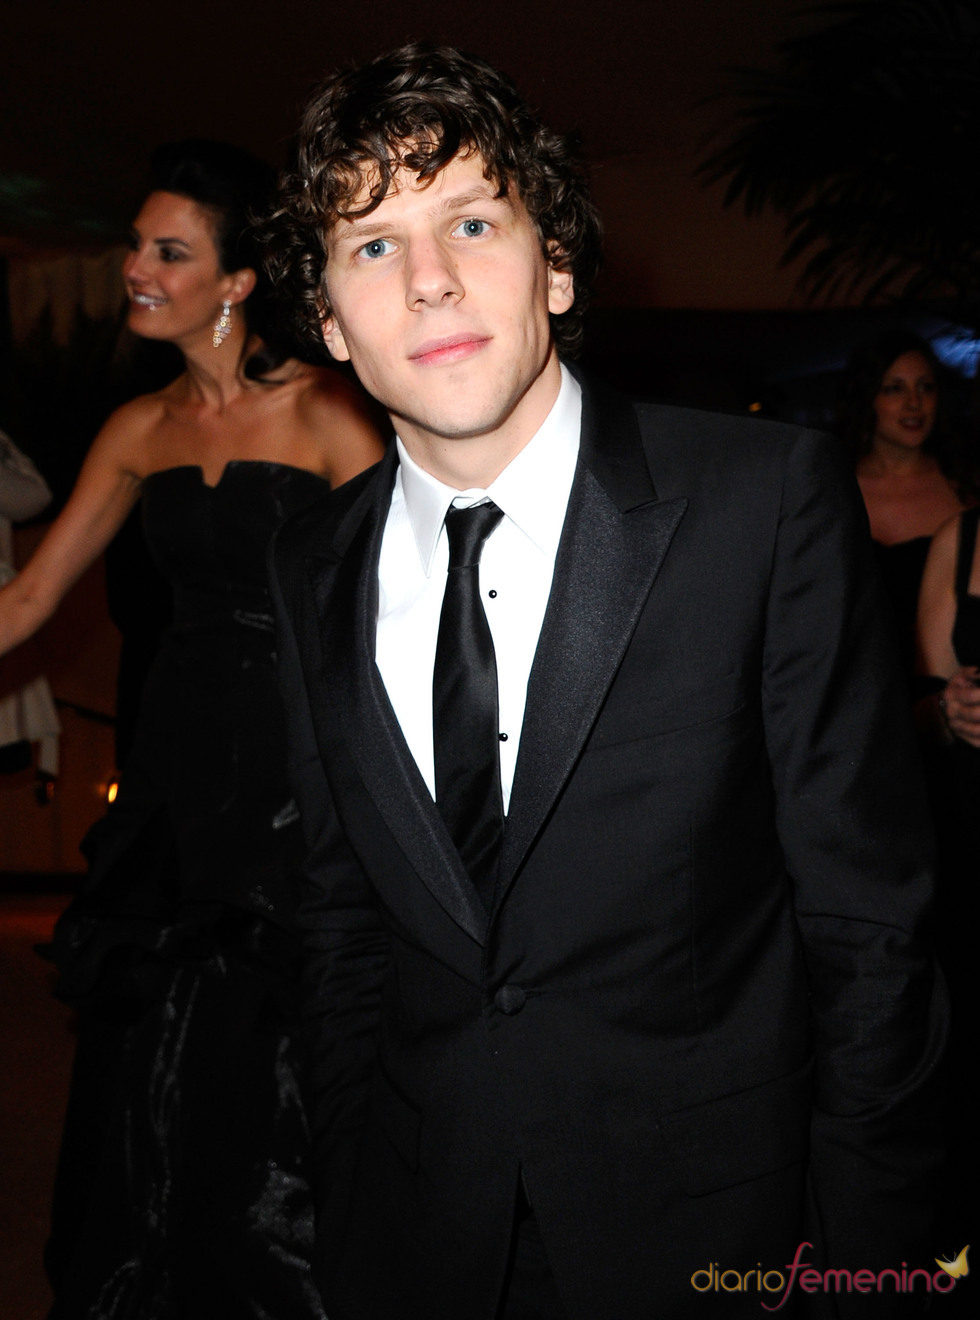 Jesse Eisenberg en la cena Governor's Ball post Oscars 2011